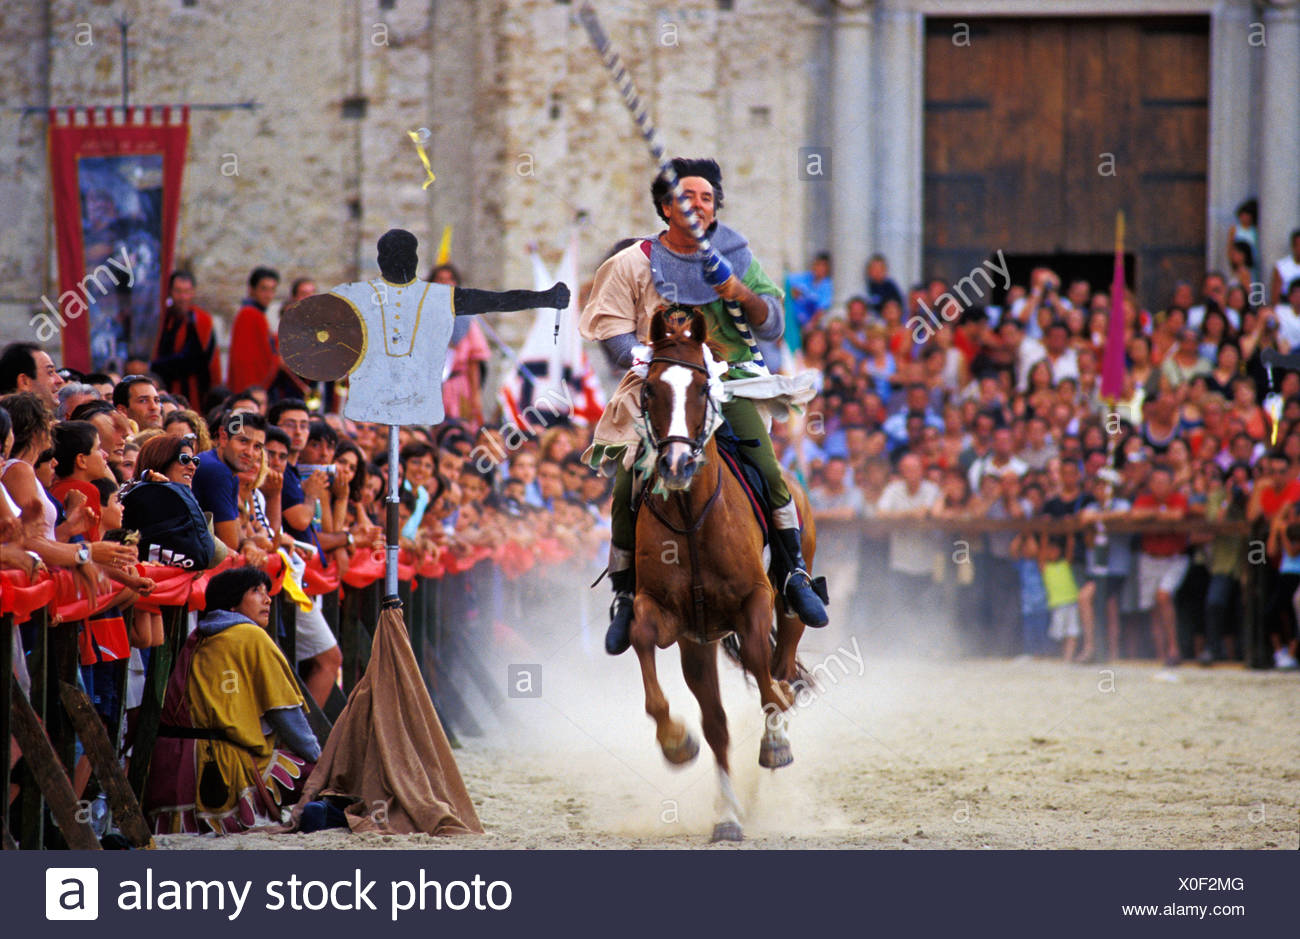 Palio, medieval joust in Stilo, rider tries to spike a little ring, Calabria, Italy - Stock Image